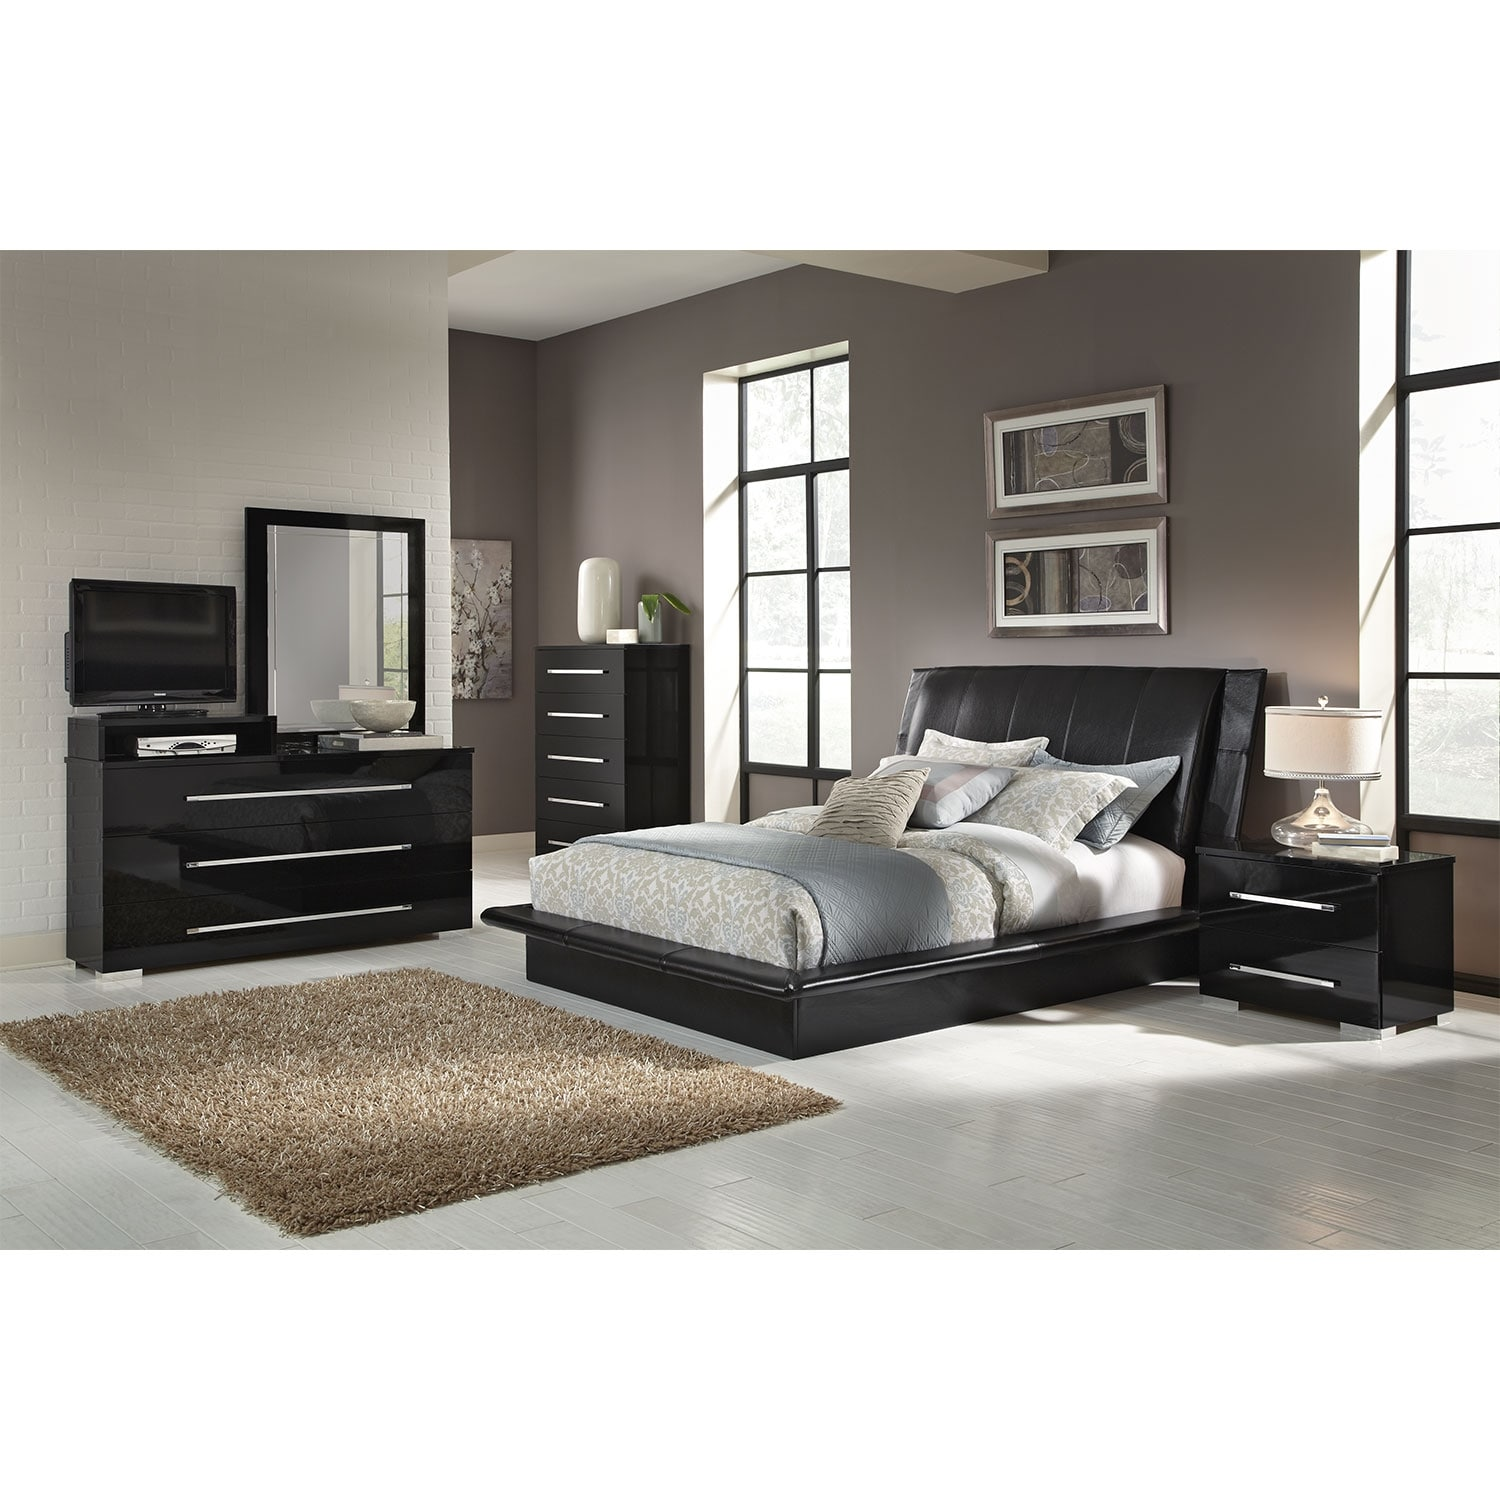 Dimora 7-Piece King Upholstered Bedroom Set with Media Dresser - Black